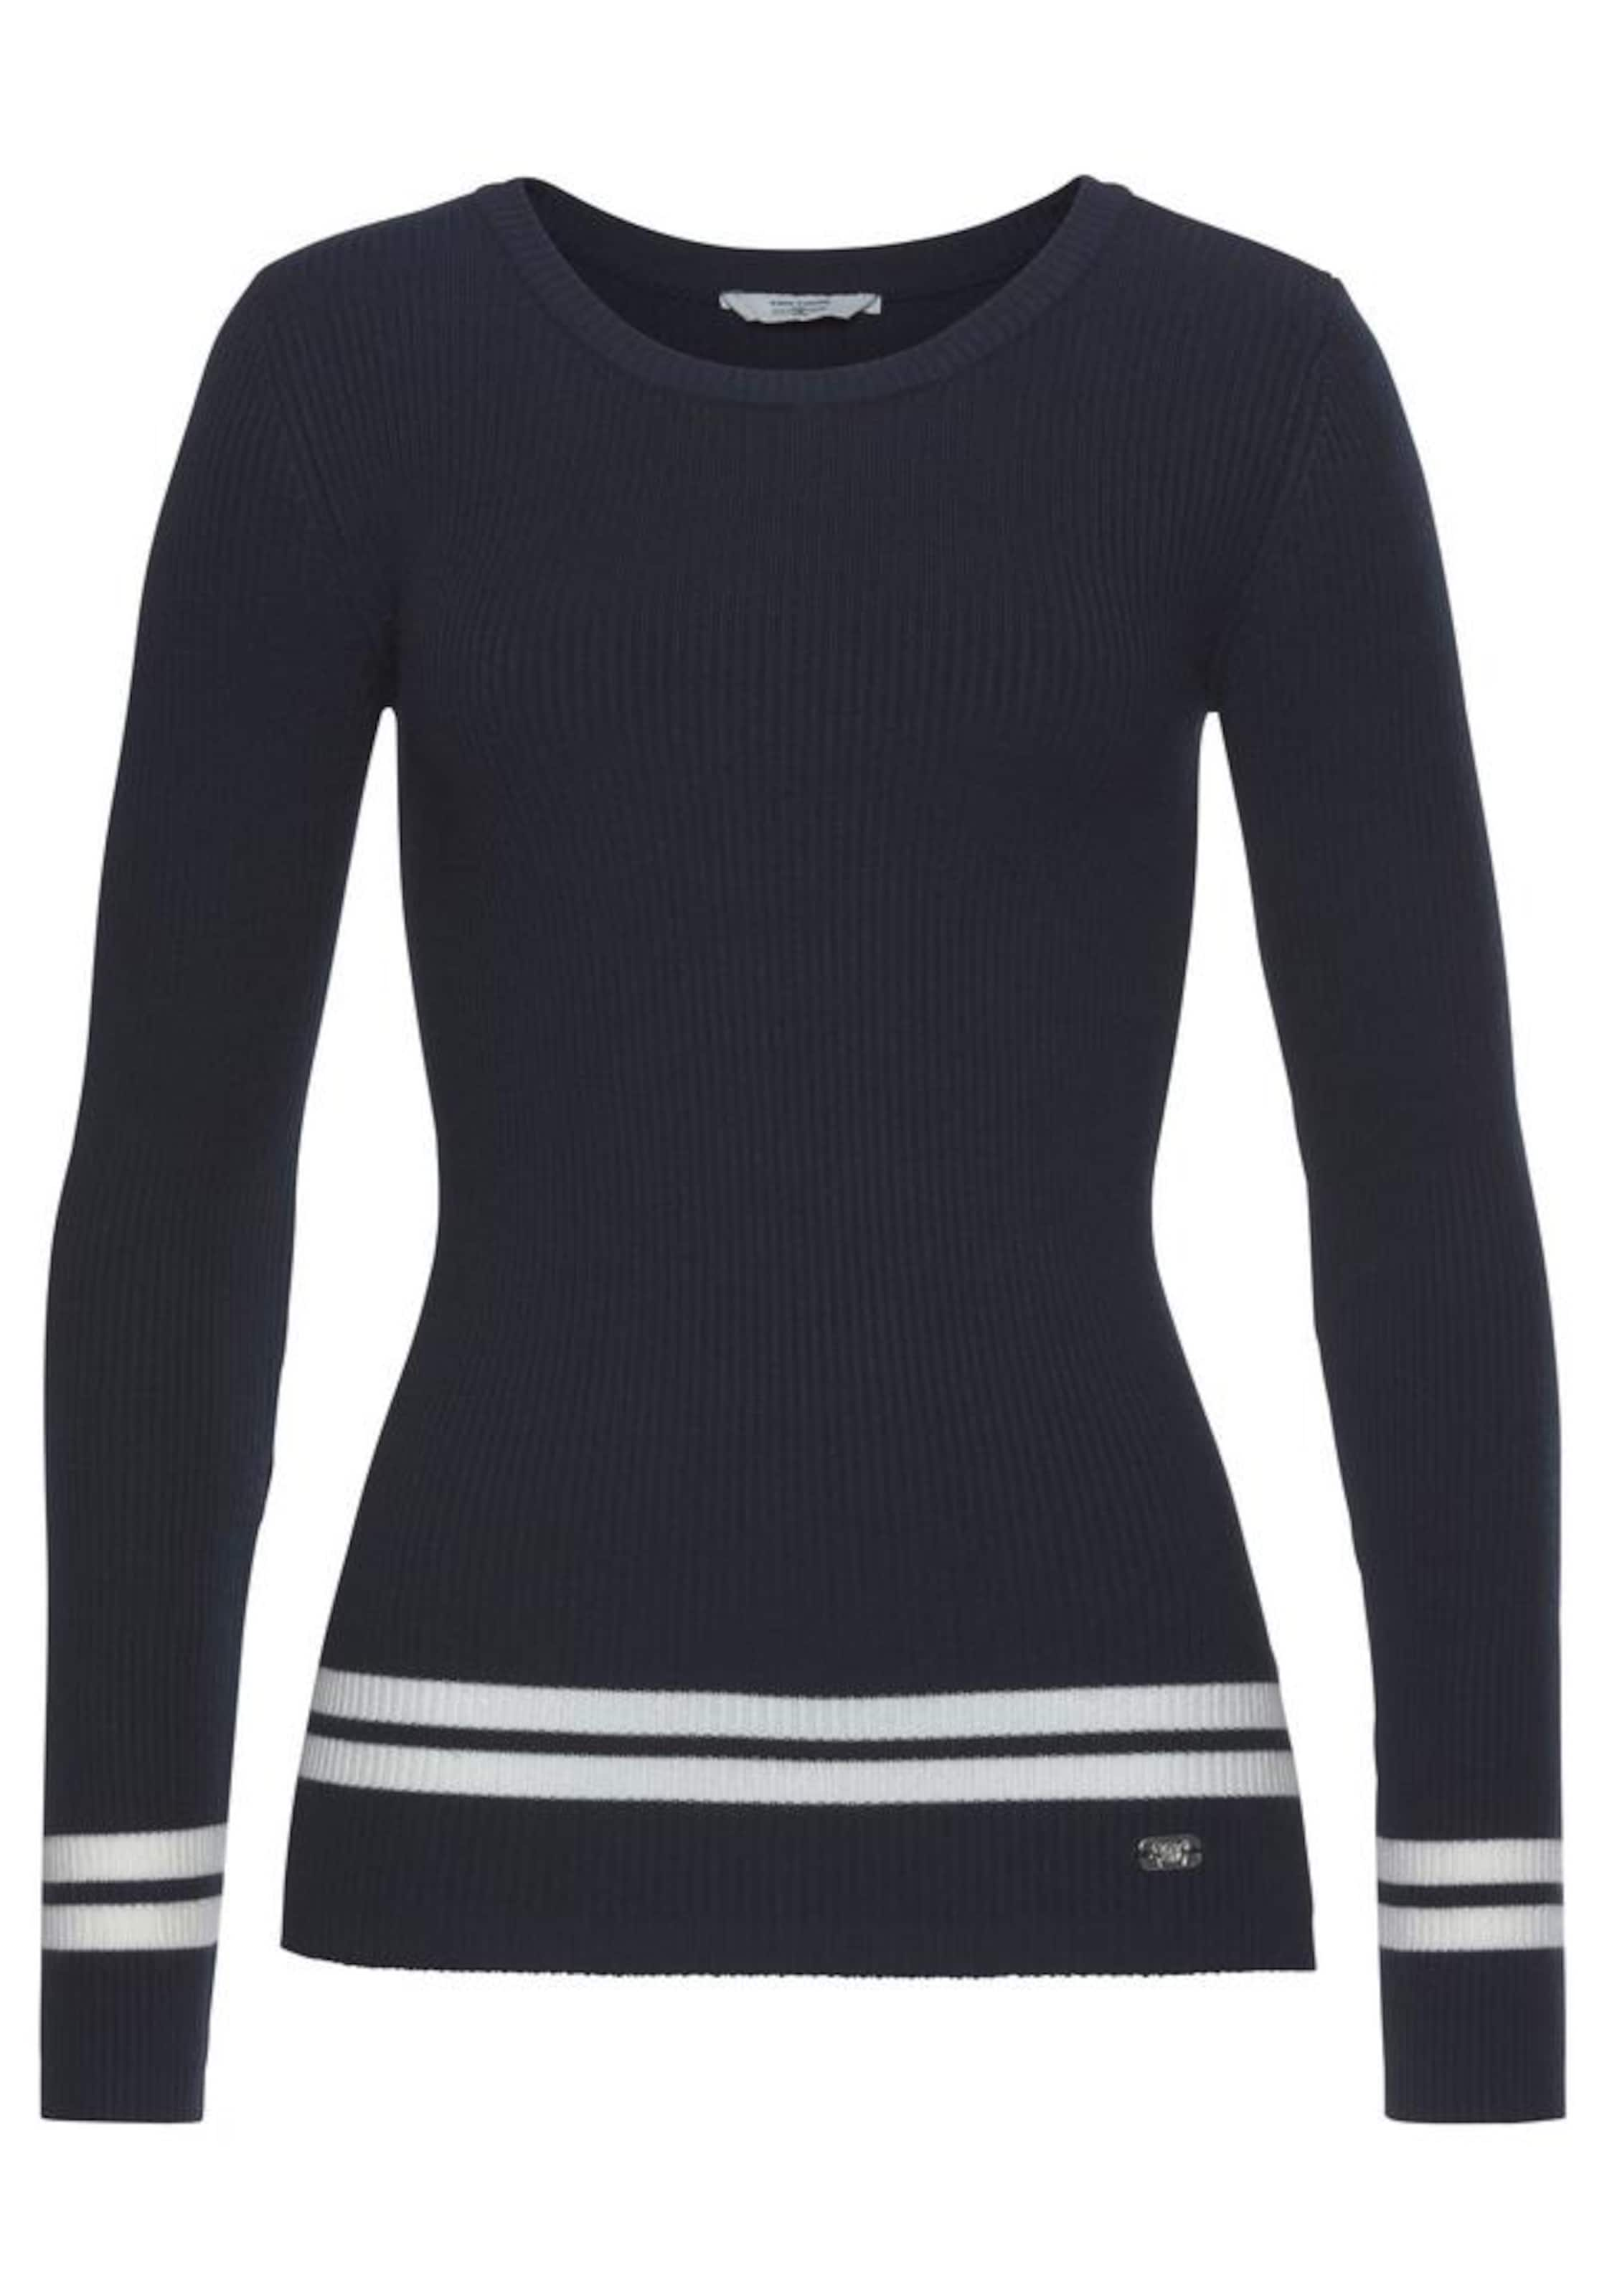 Tom Tailor Team Polo Pullover NavyOffwhite In LA4j5R